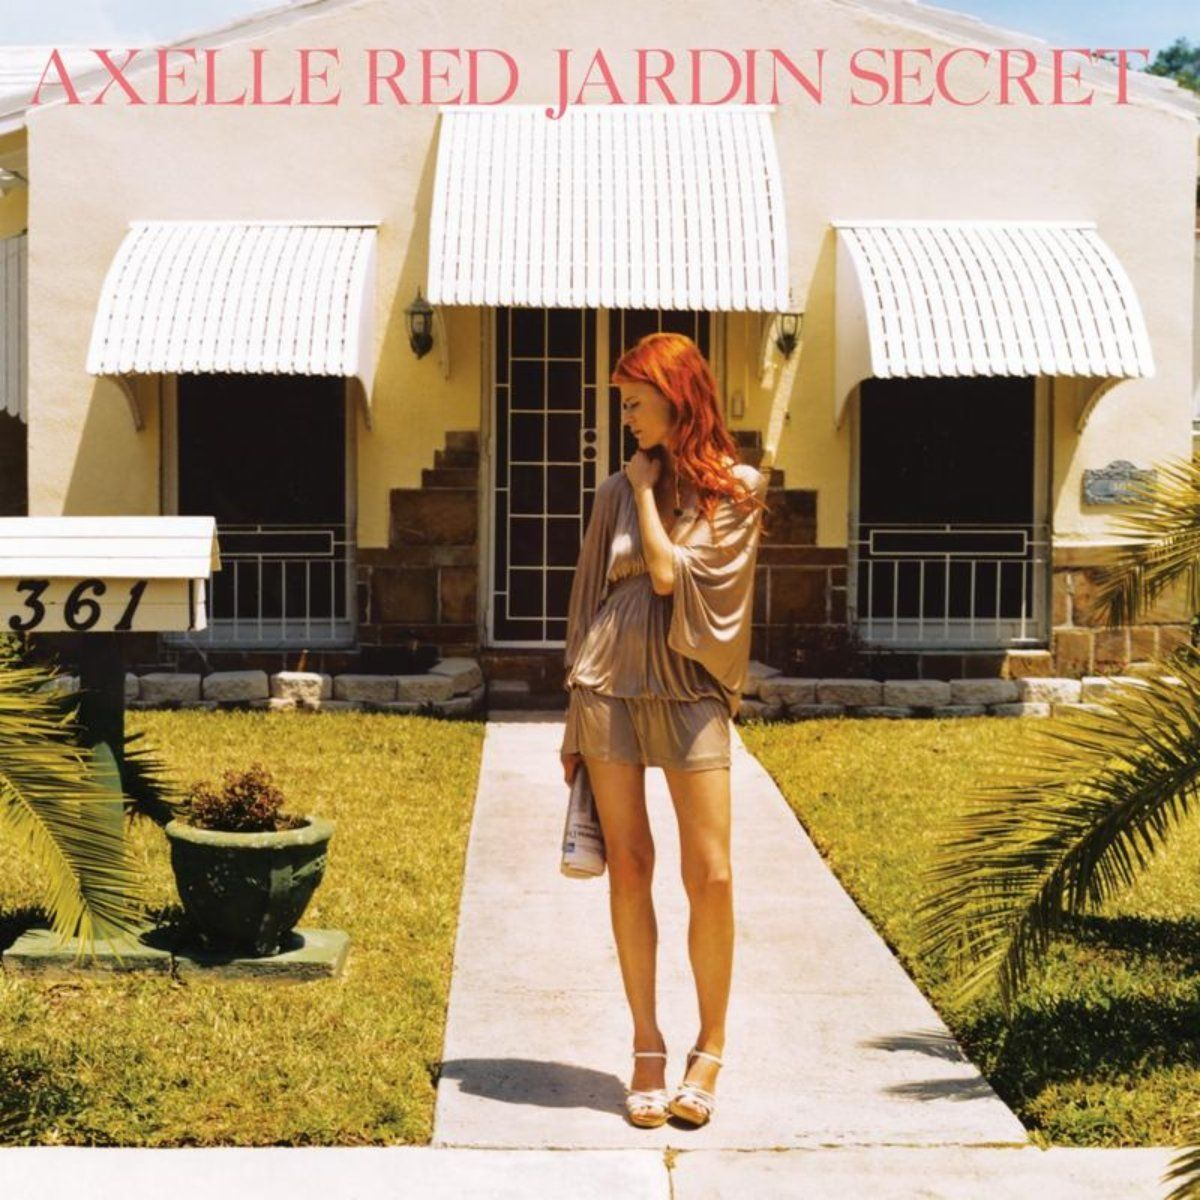 jardin secret by axelle red music charts